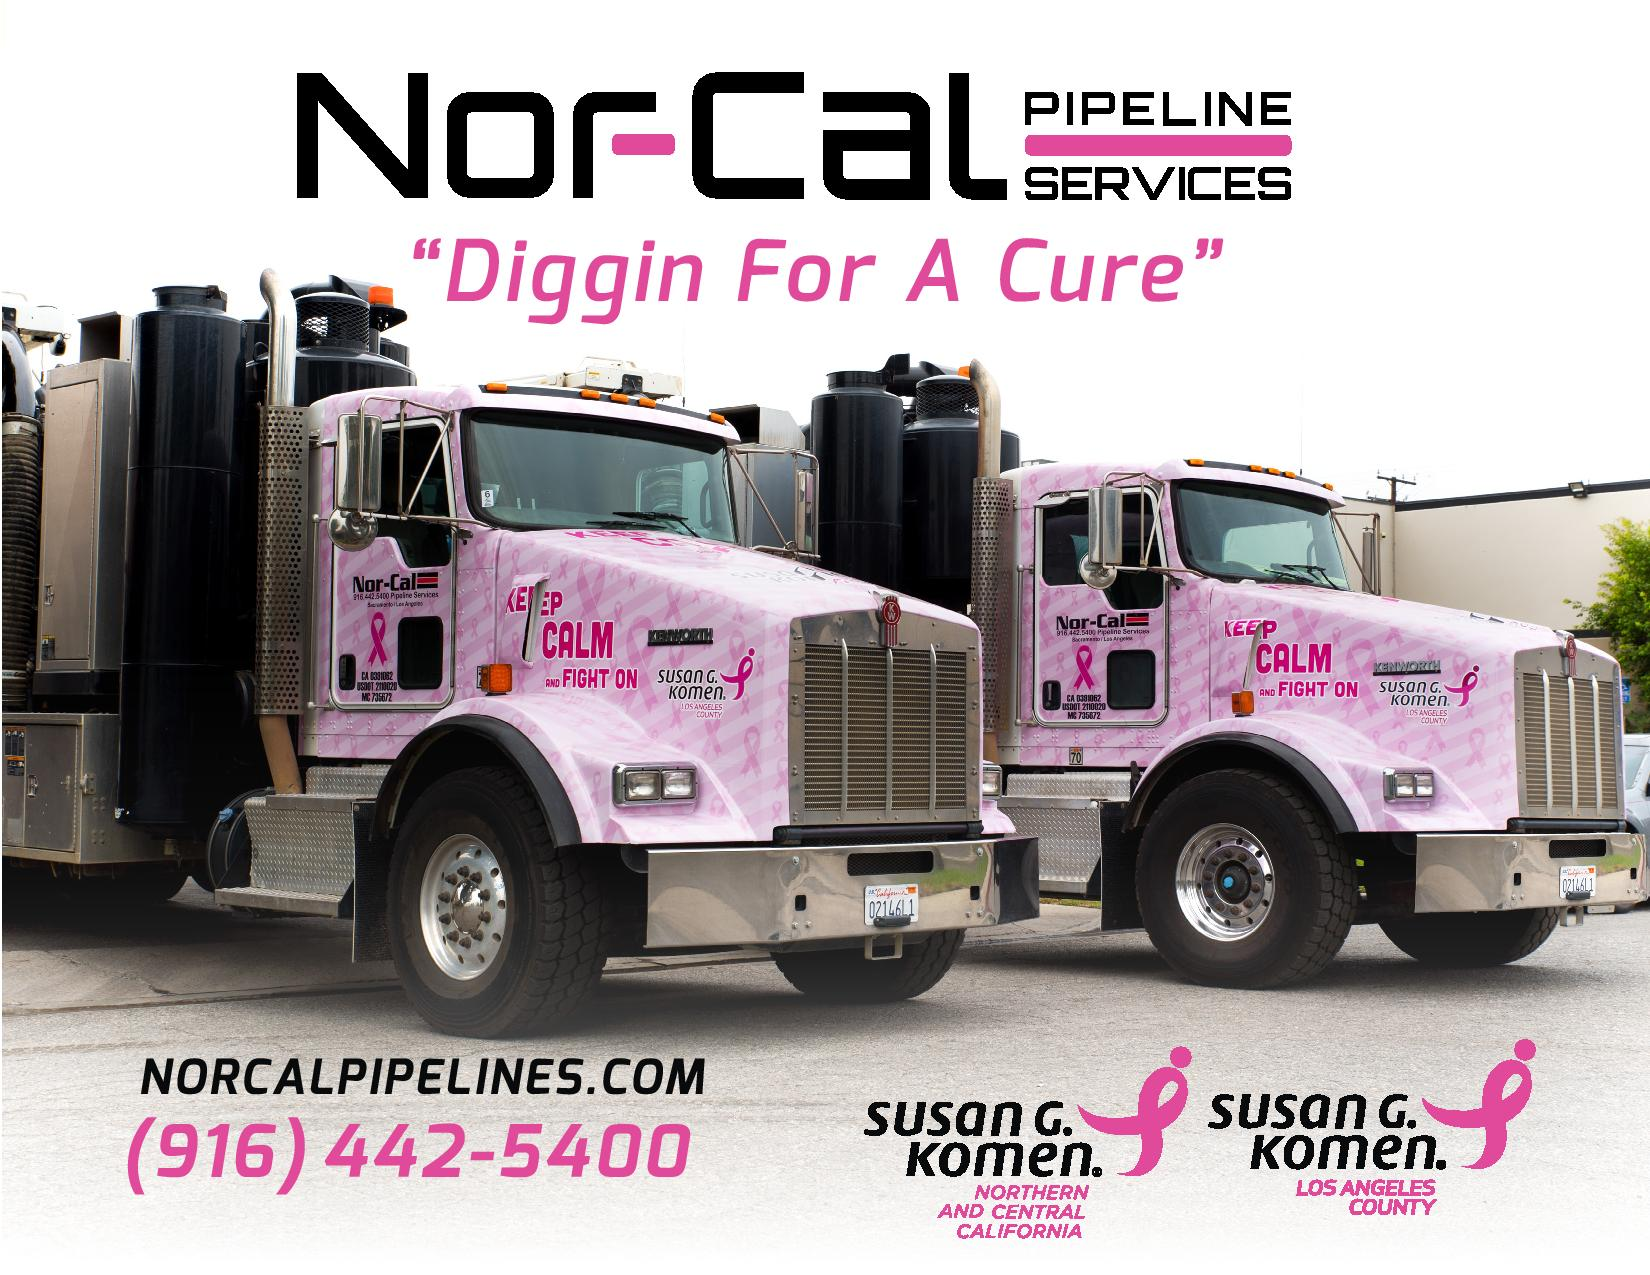 NorCal-page-001.jpg